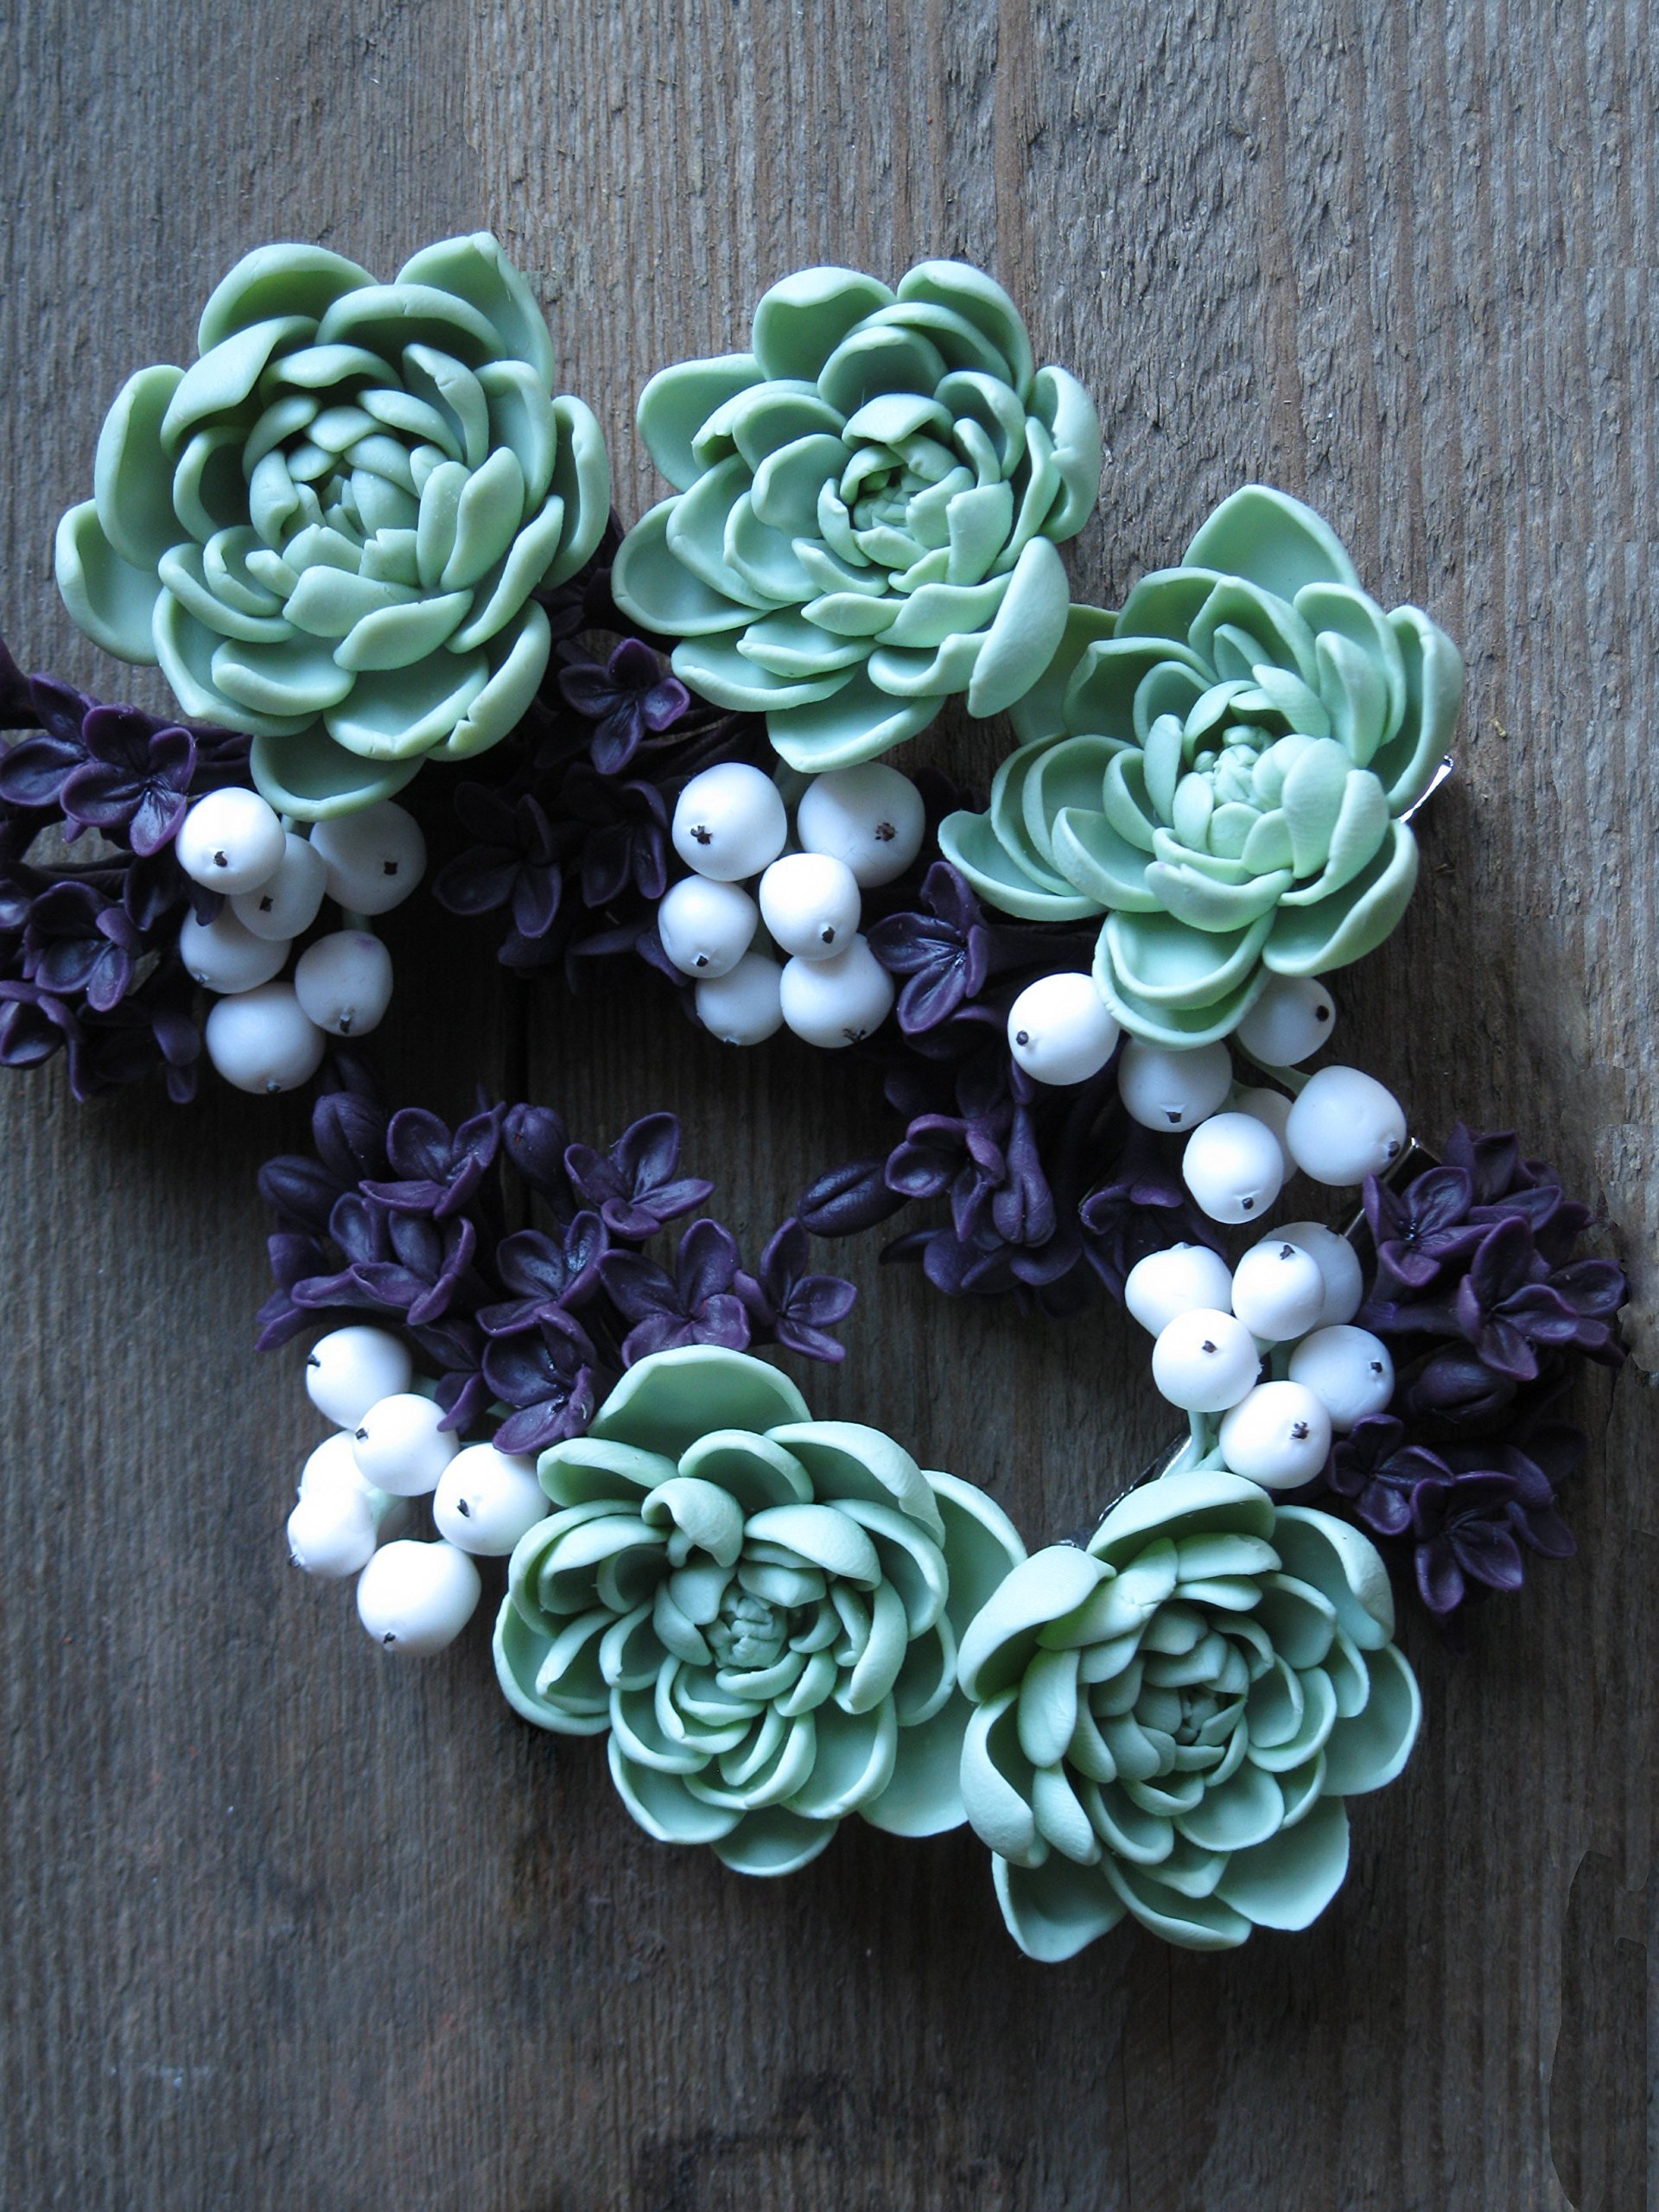 Wedding hair accessories with flowers succulents Sage green gray mint Plum lilac purple violet syringe White berries snowberries Floral hair clip Woodland nature hair piece Bridesmaid hairpiece